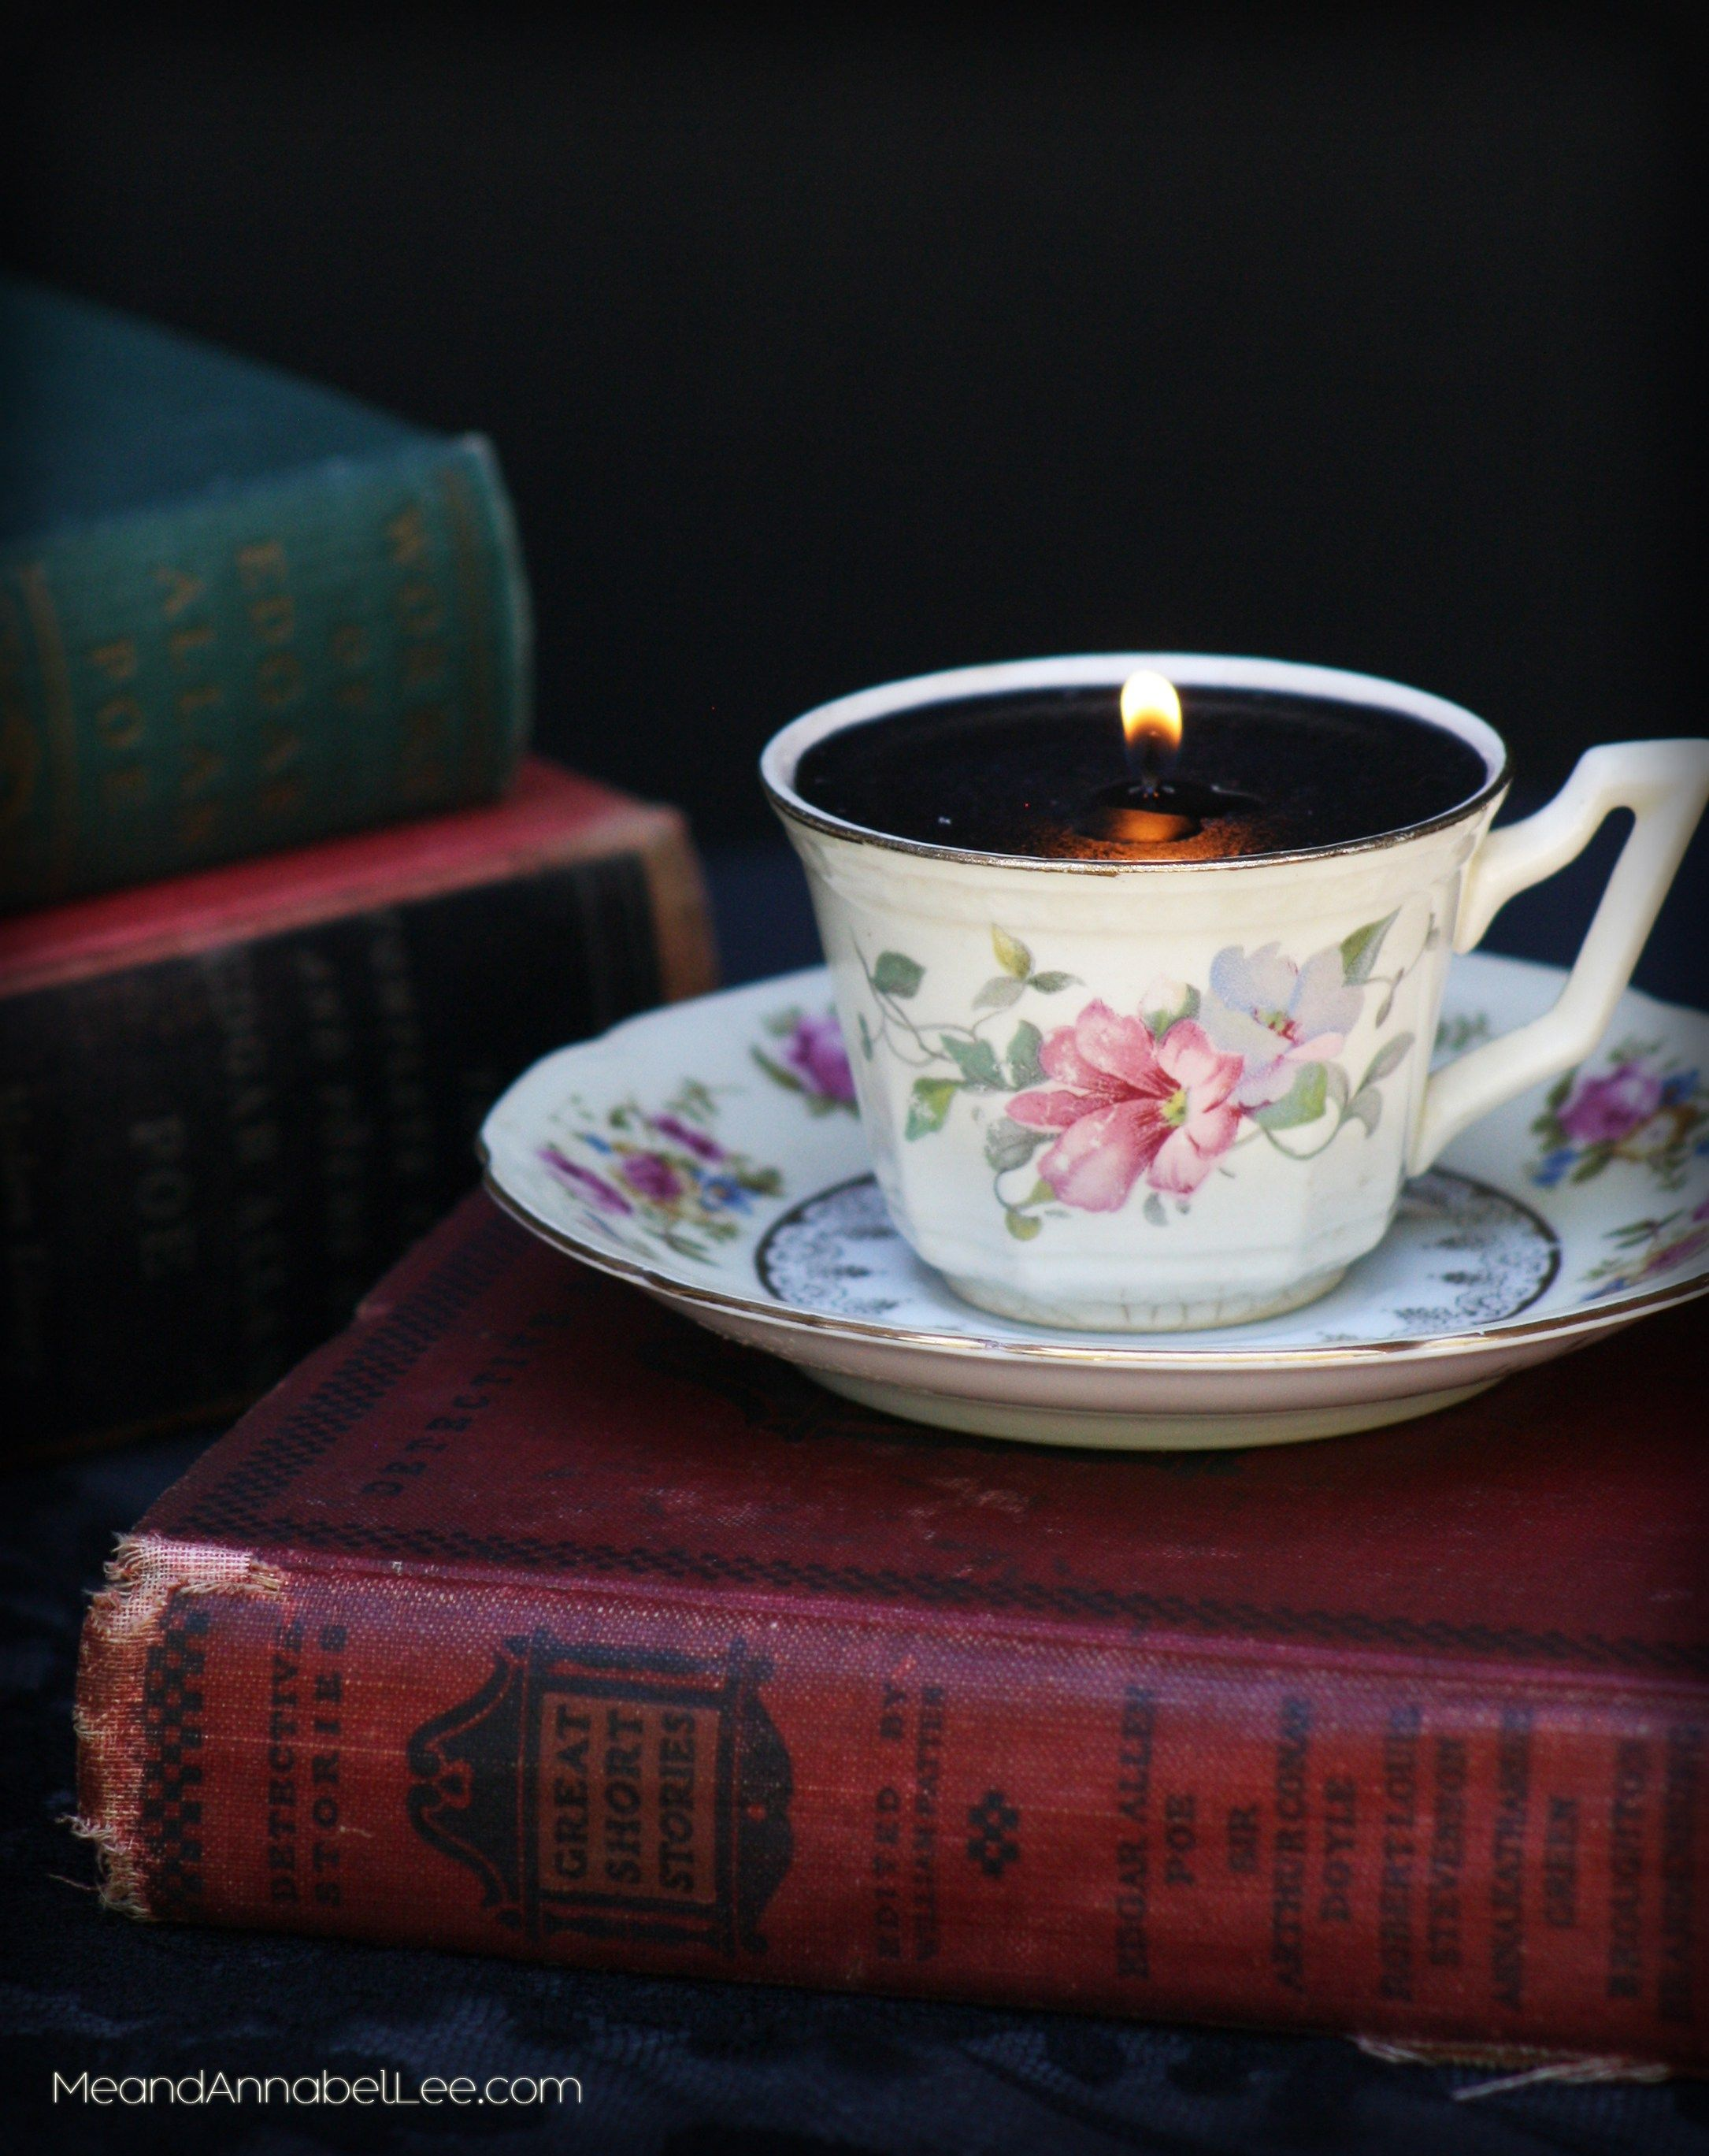 Diy Victorian Gothic Black Tea Cup Candles Goth It Yourself Candlemaking How To Make